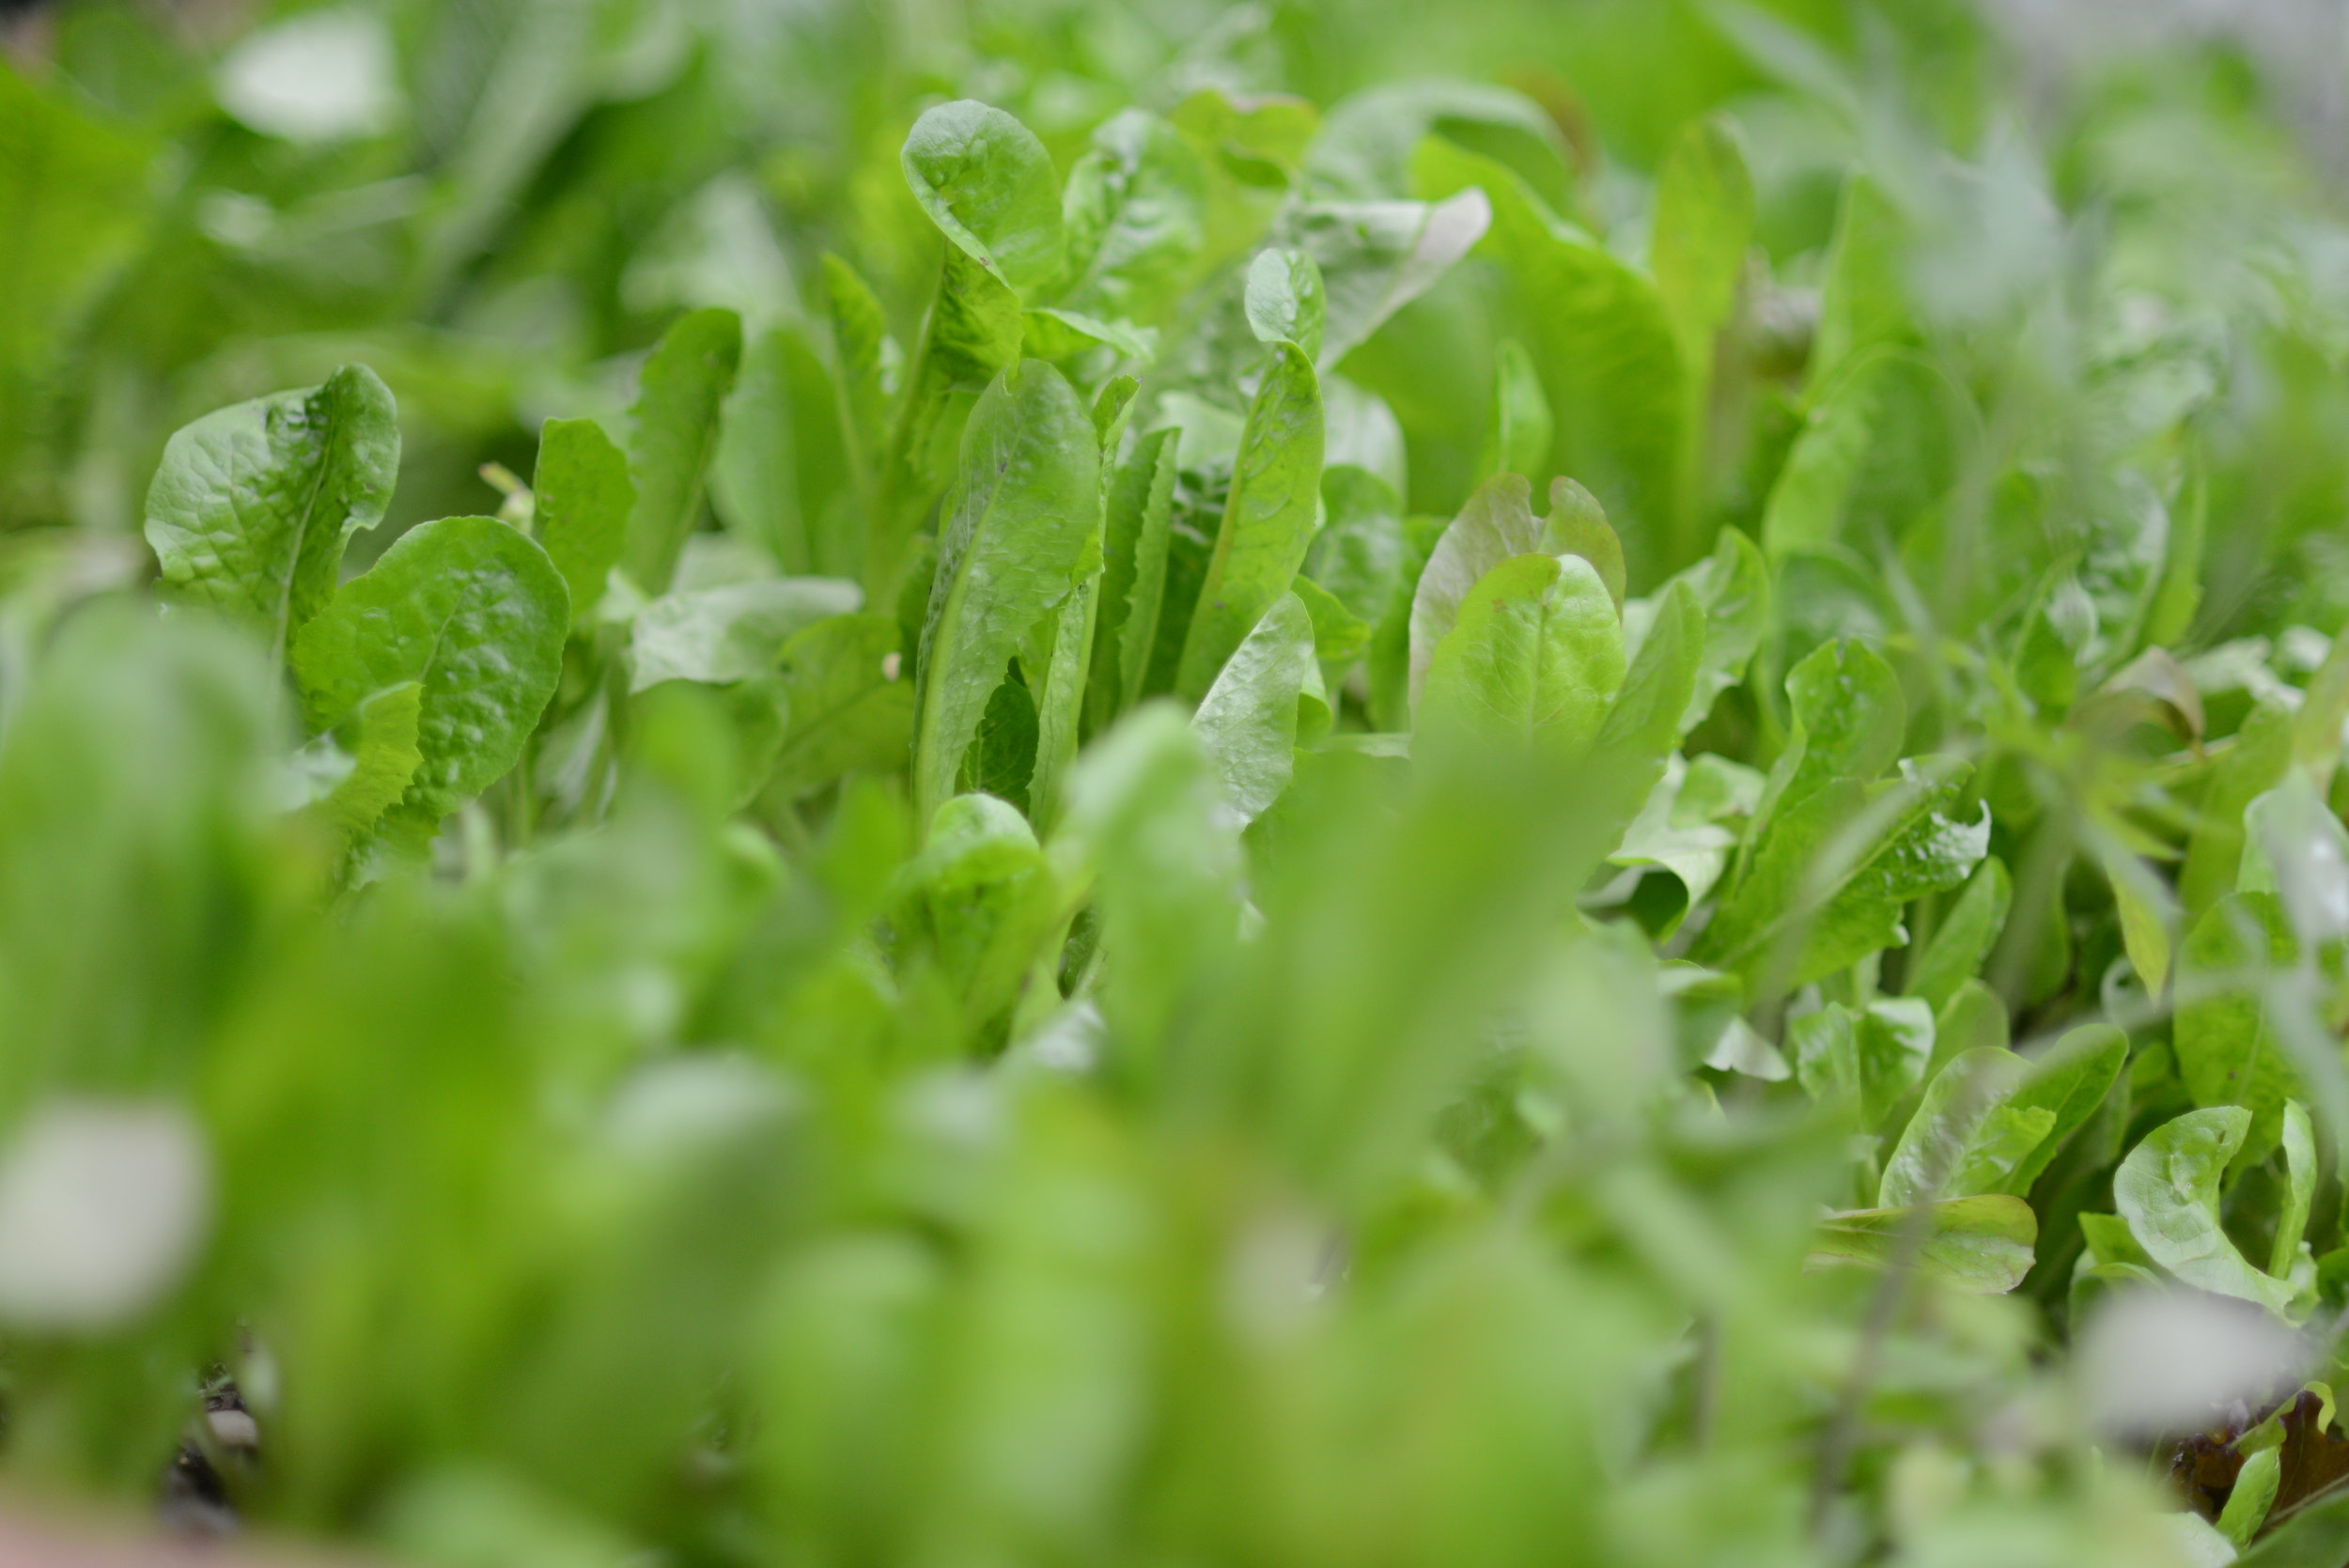 Can you see the lettuce through the leaves?